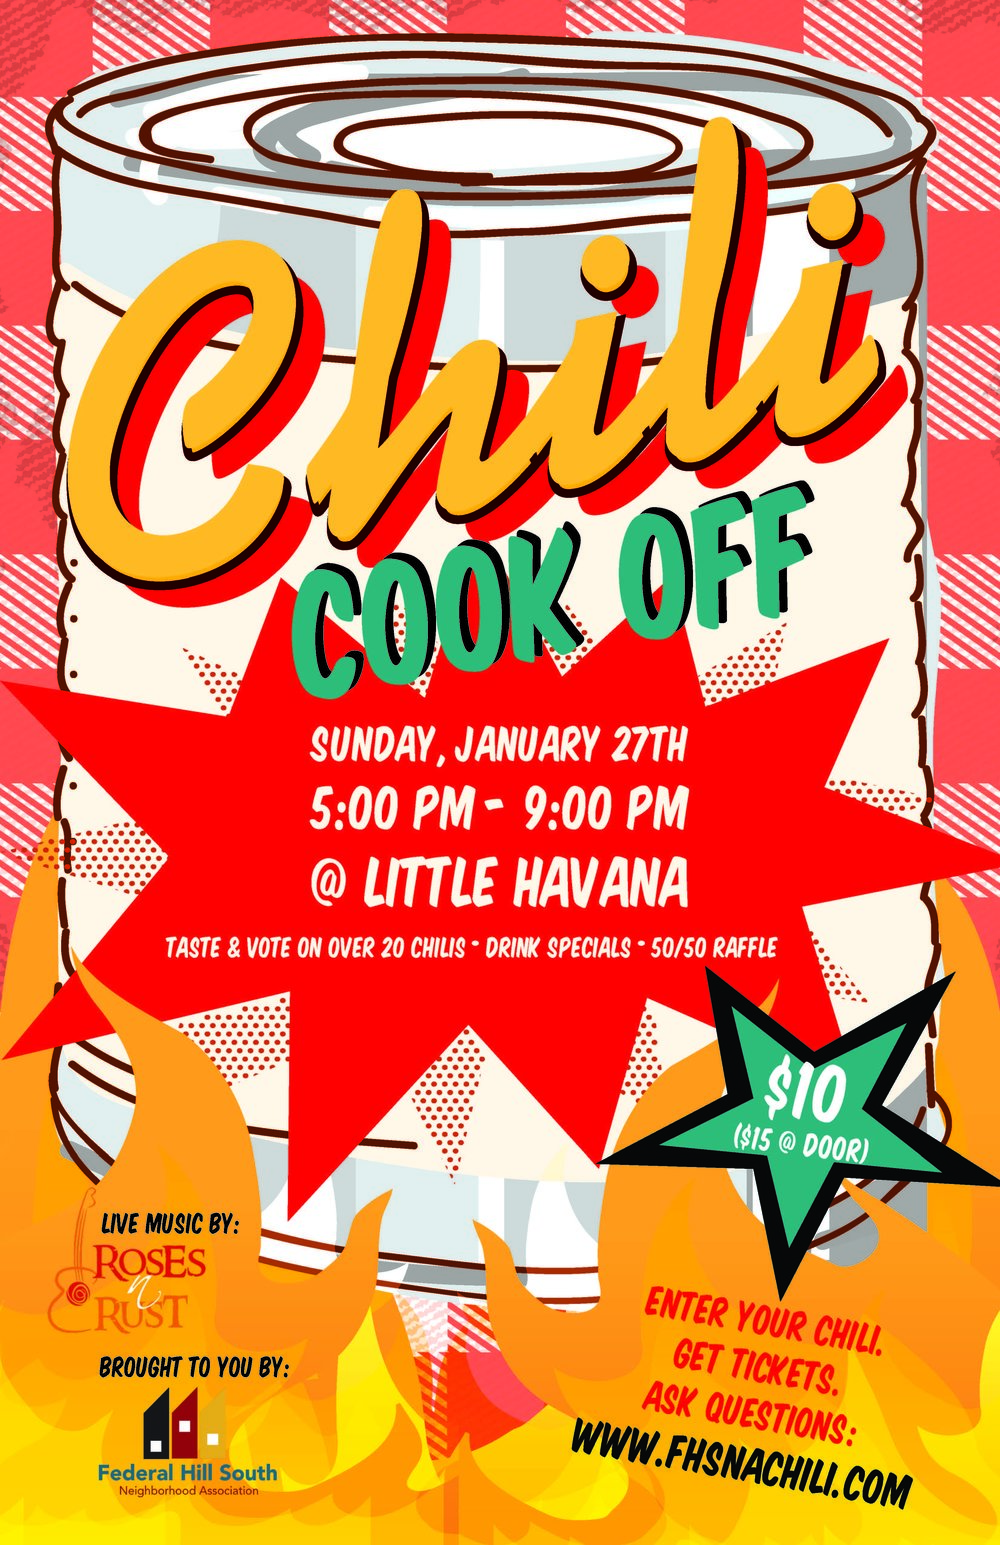 CHILI COOK OFF FLYER 2019.jpg